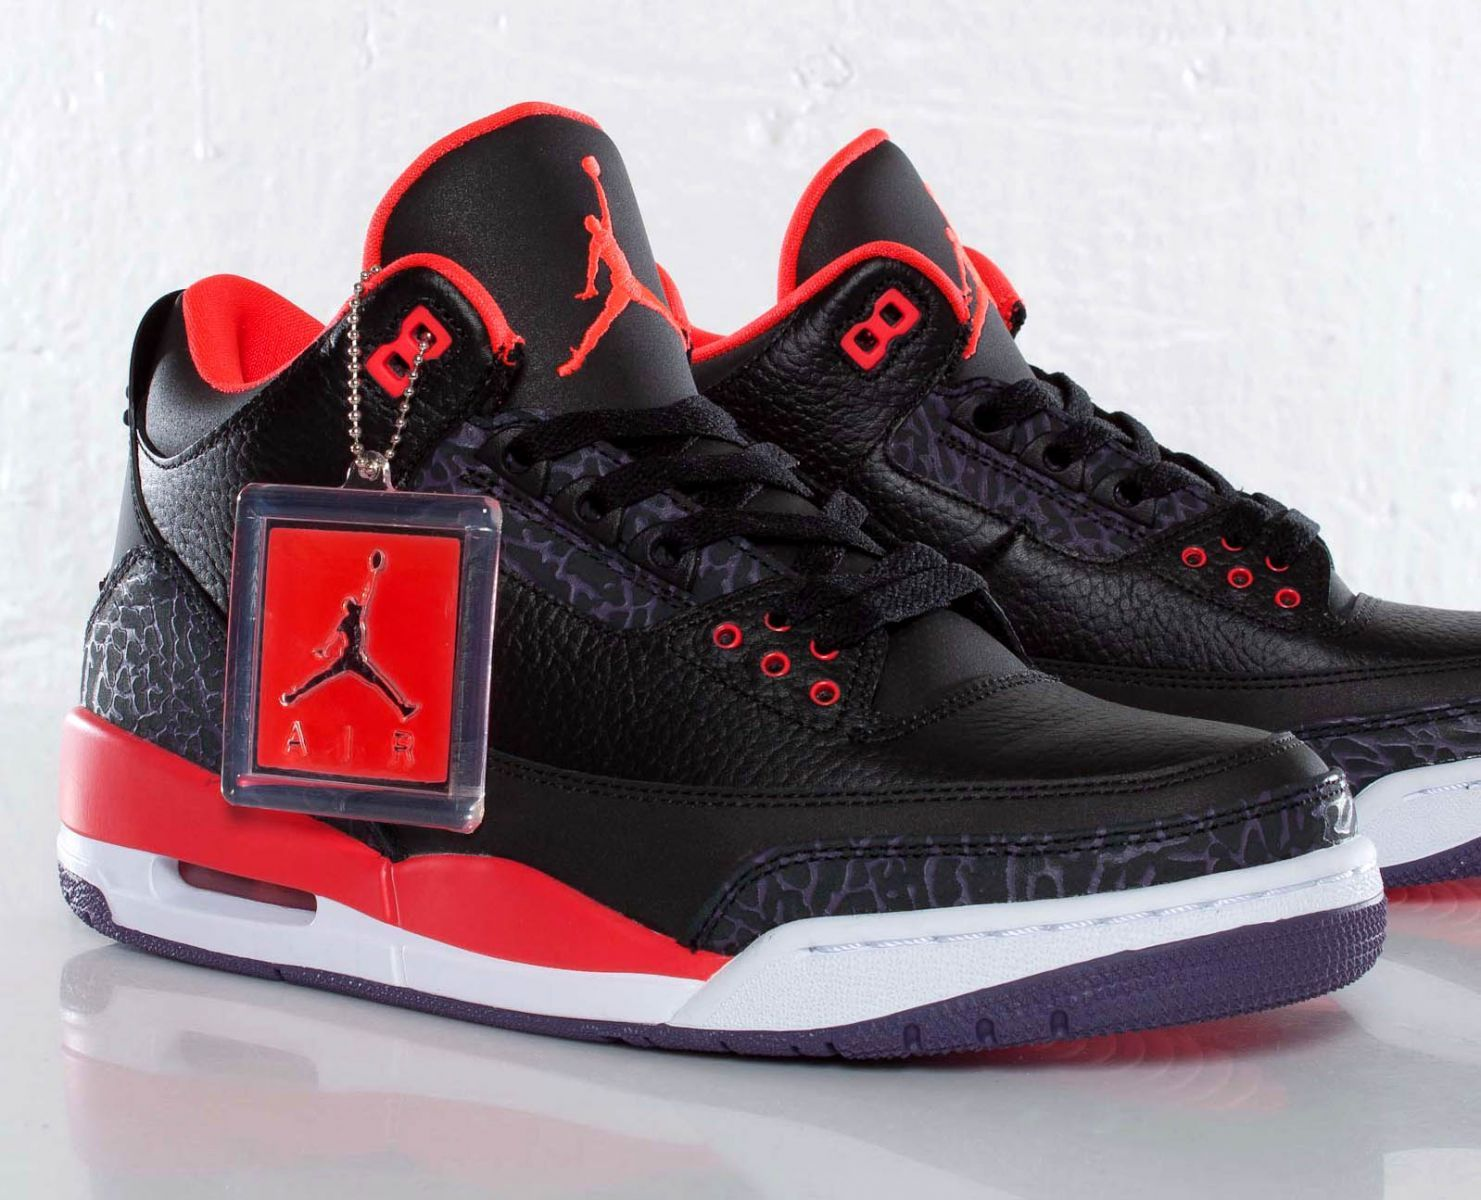 new air jordans | Air Jordan 3 Retro